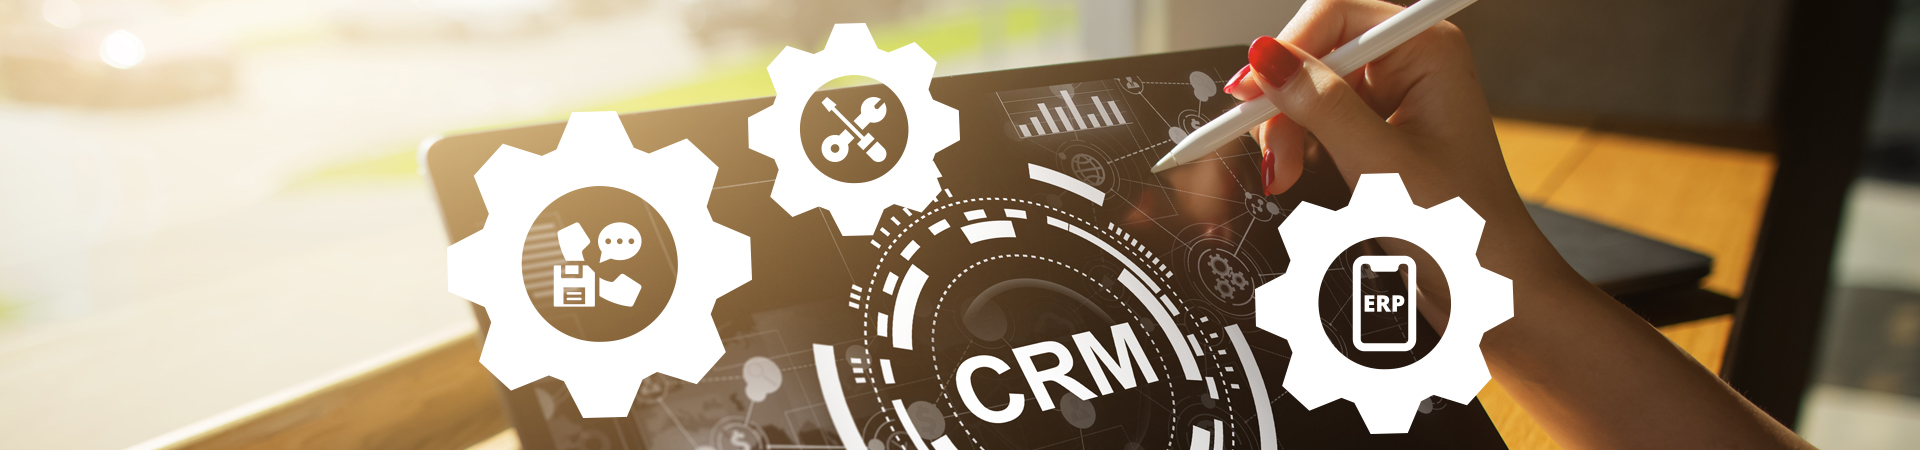 Microsoft Dynamics CRM Customization and Support for a Multi-business Company